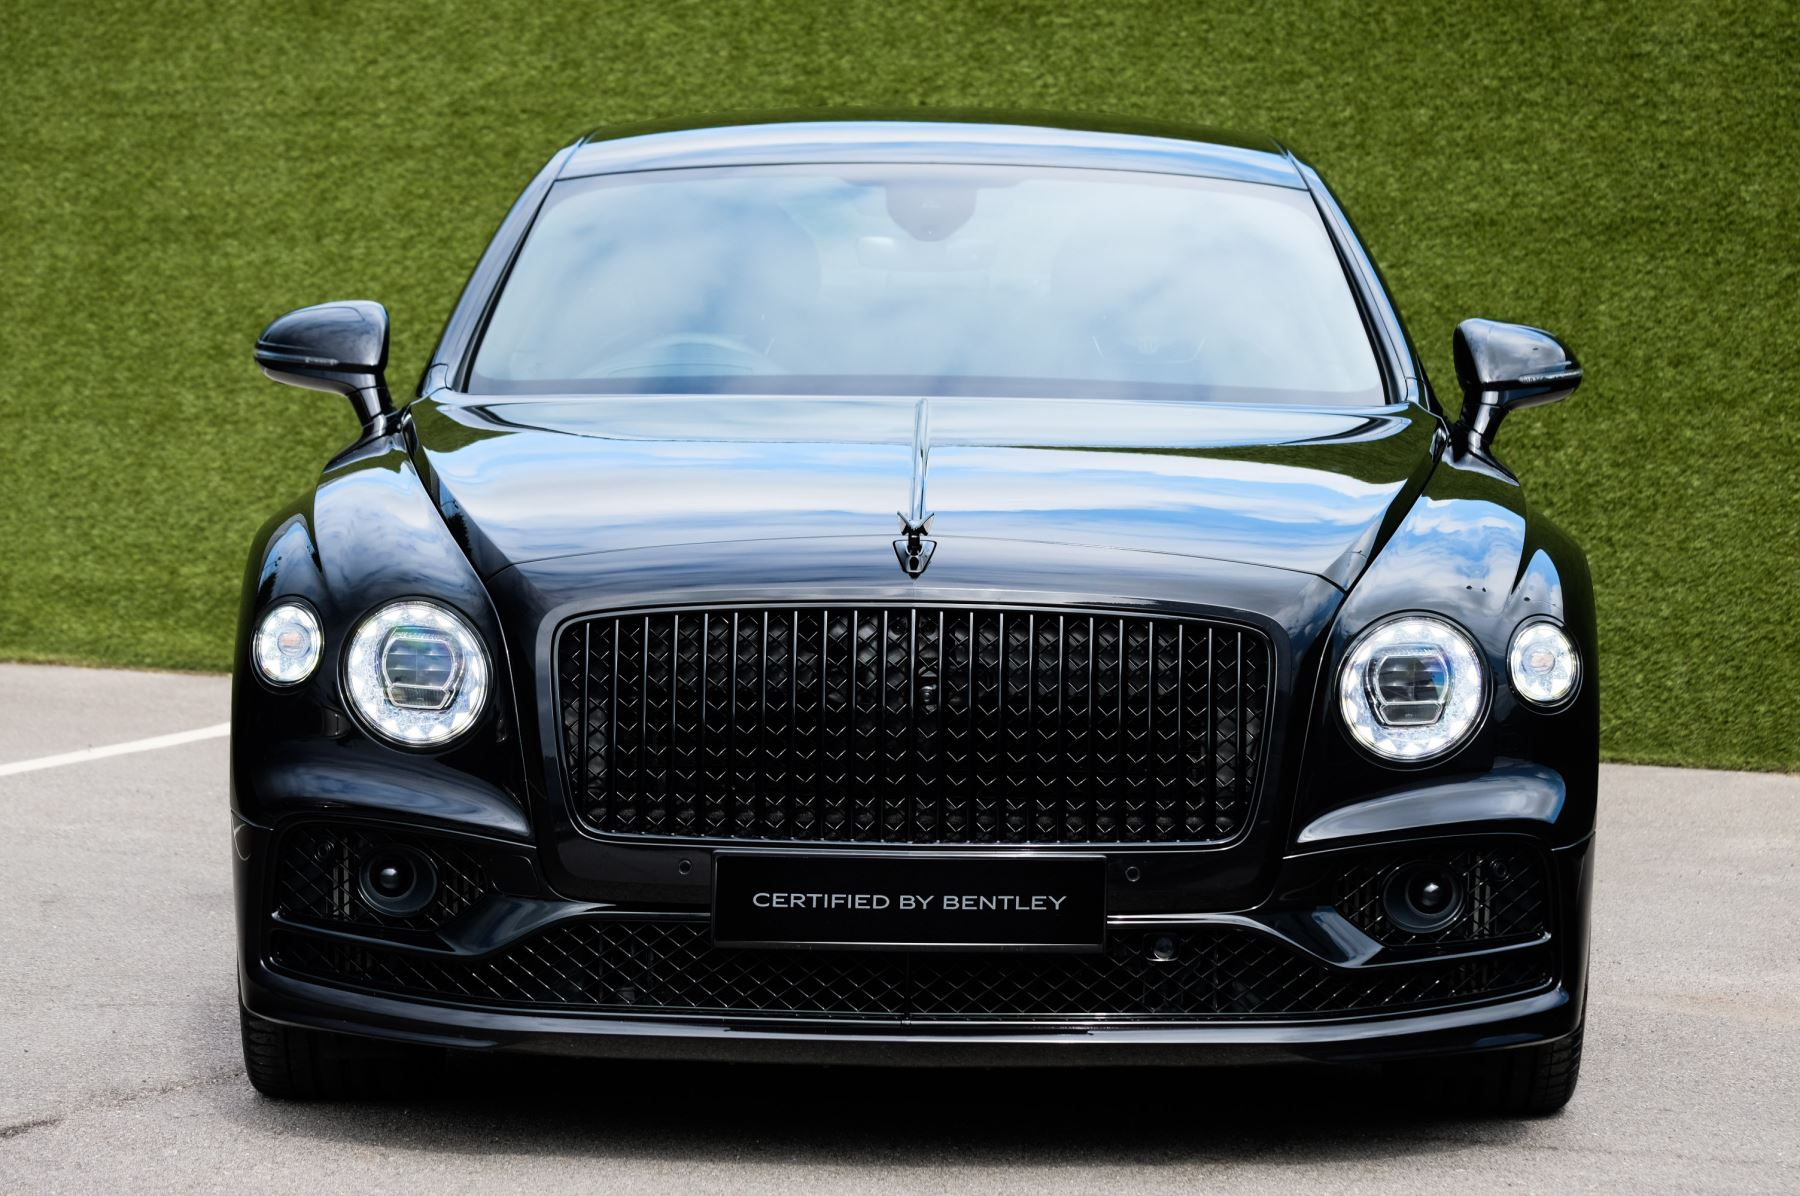 Bentley Flying Spur 6.0 W12 - First Edition - Mulliner Driving Specification image 2